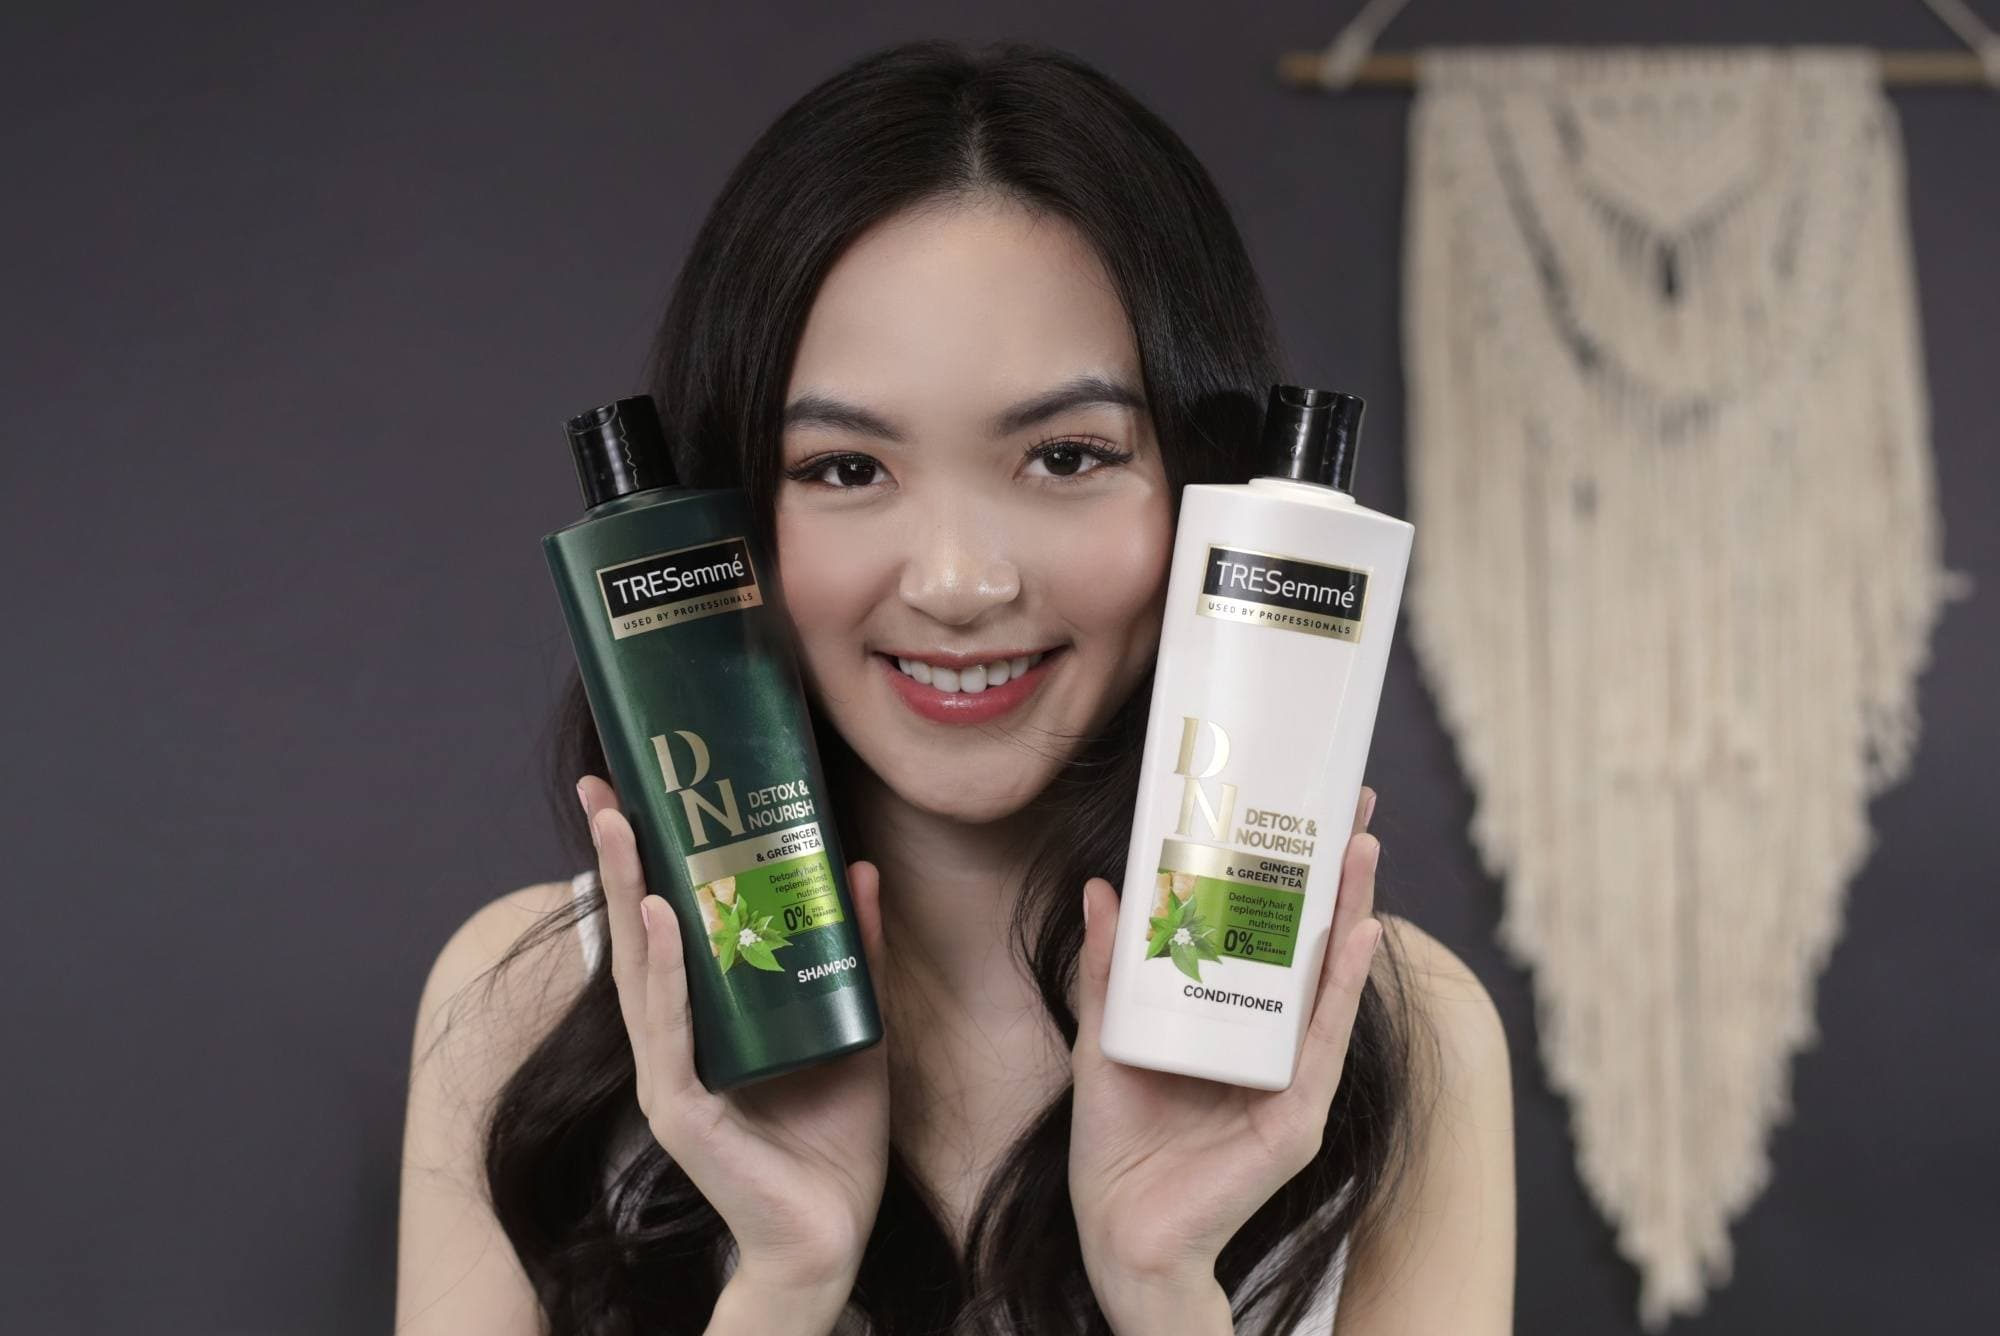 Asian woman with long black hair holding shampoo and conditioner bottles smiling